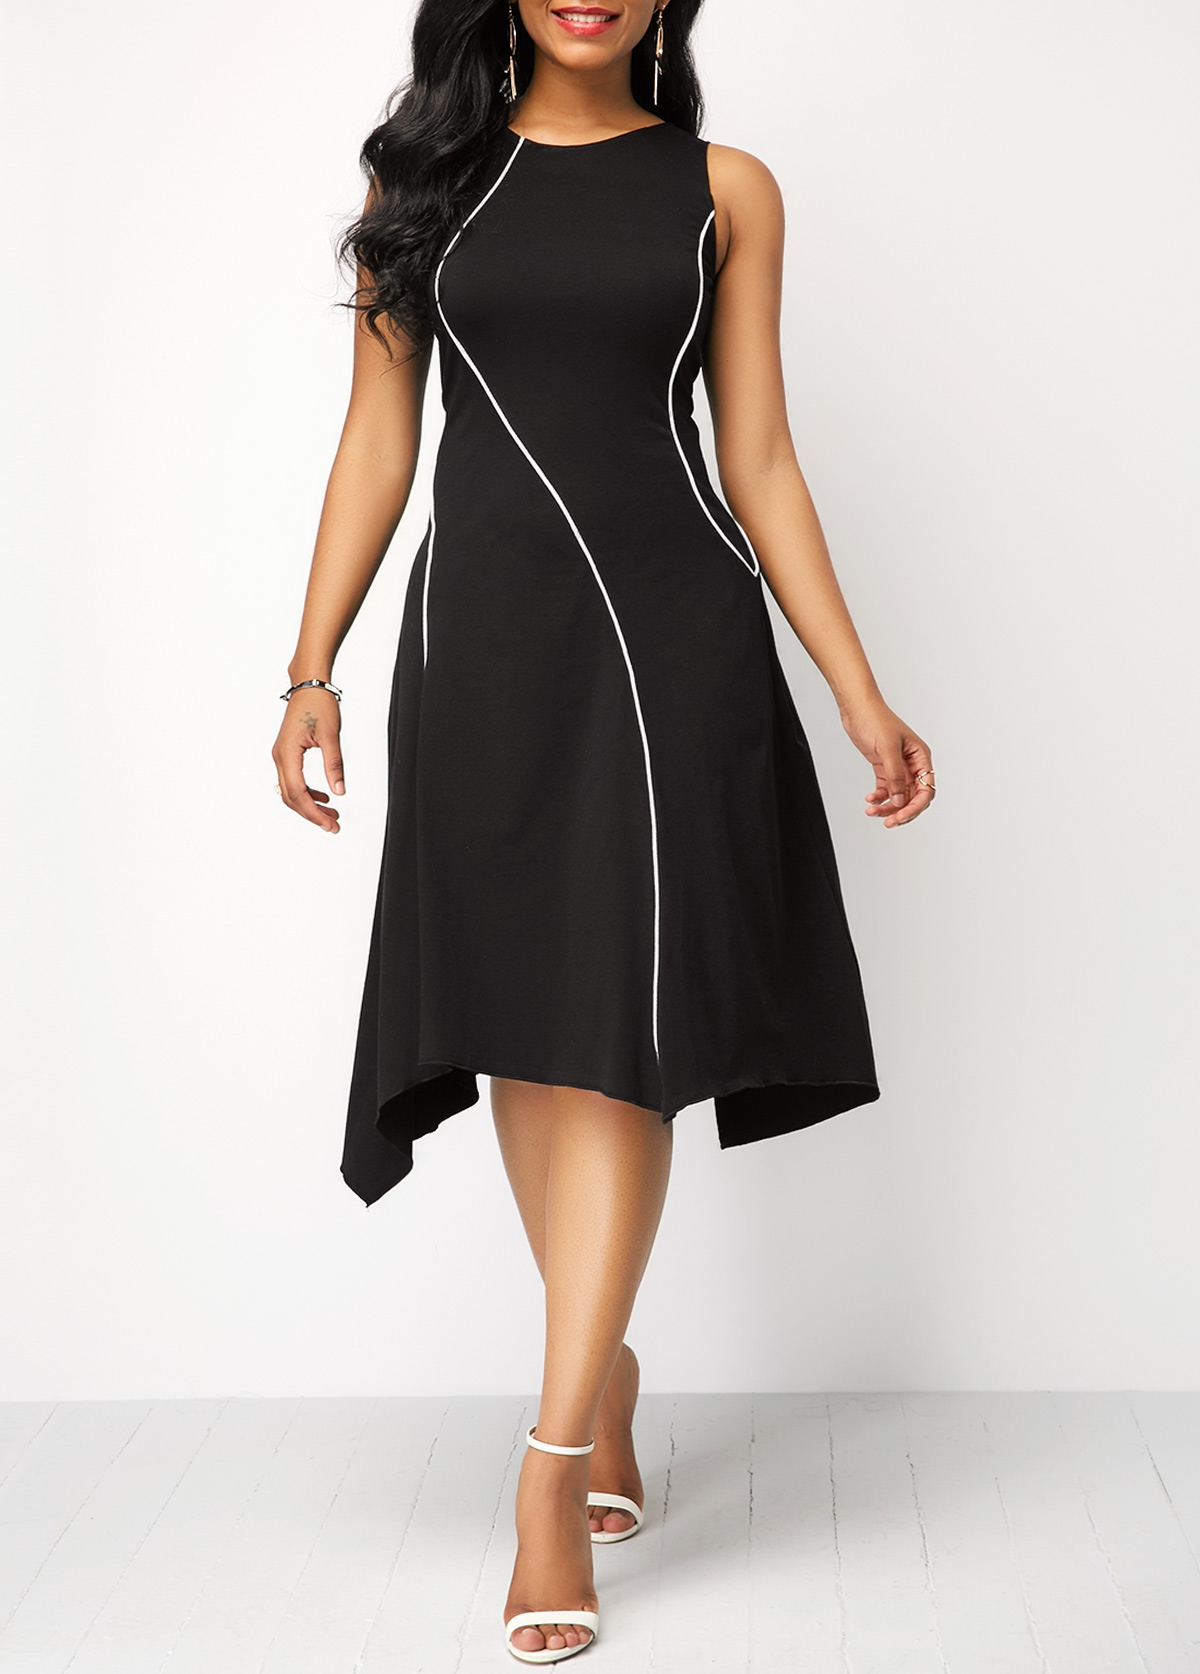 Asymmetric Hem Round Neck Black Dress